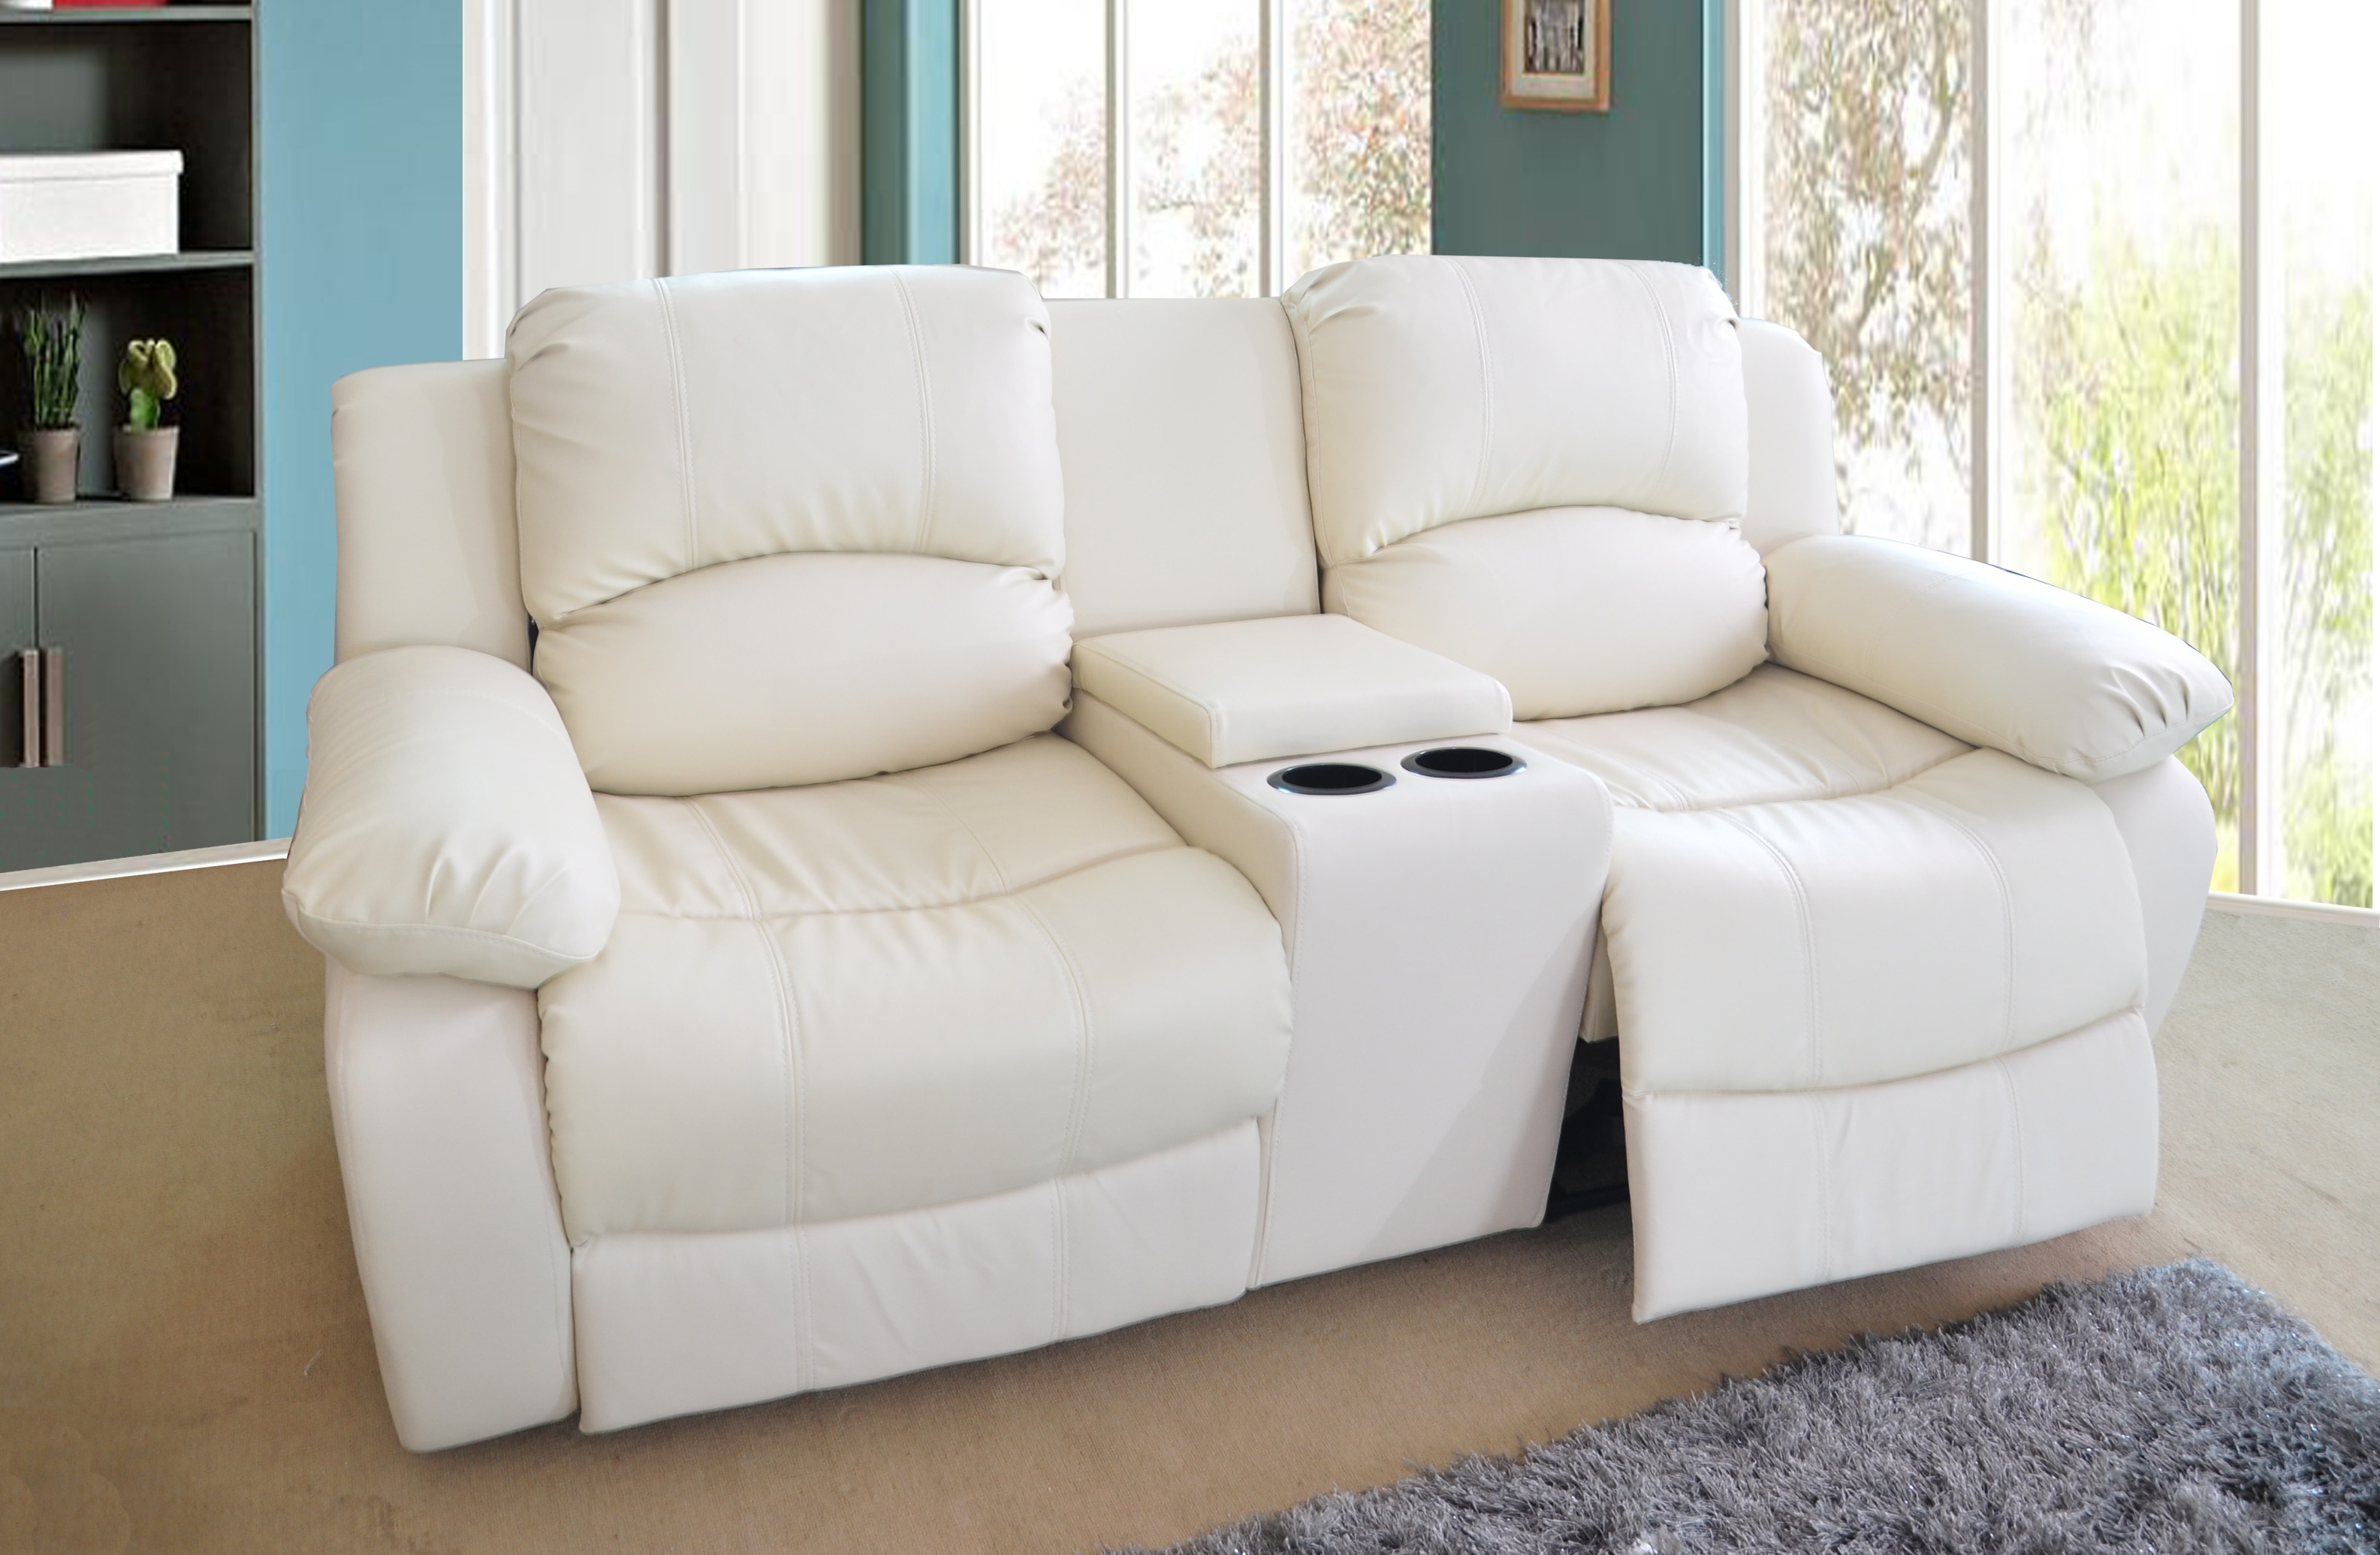 Latest Furniture: Marvelous Cheap 2 Seater Sofa Bed Cheap 2 Seater Sofa Regarding 2 Seater Recliner Leather Sofas (View 8 of 15)